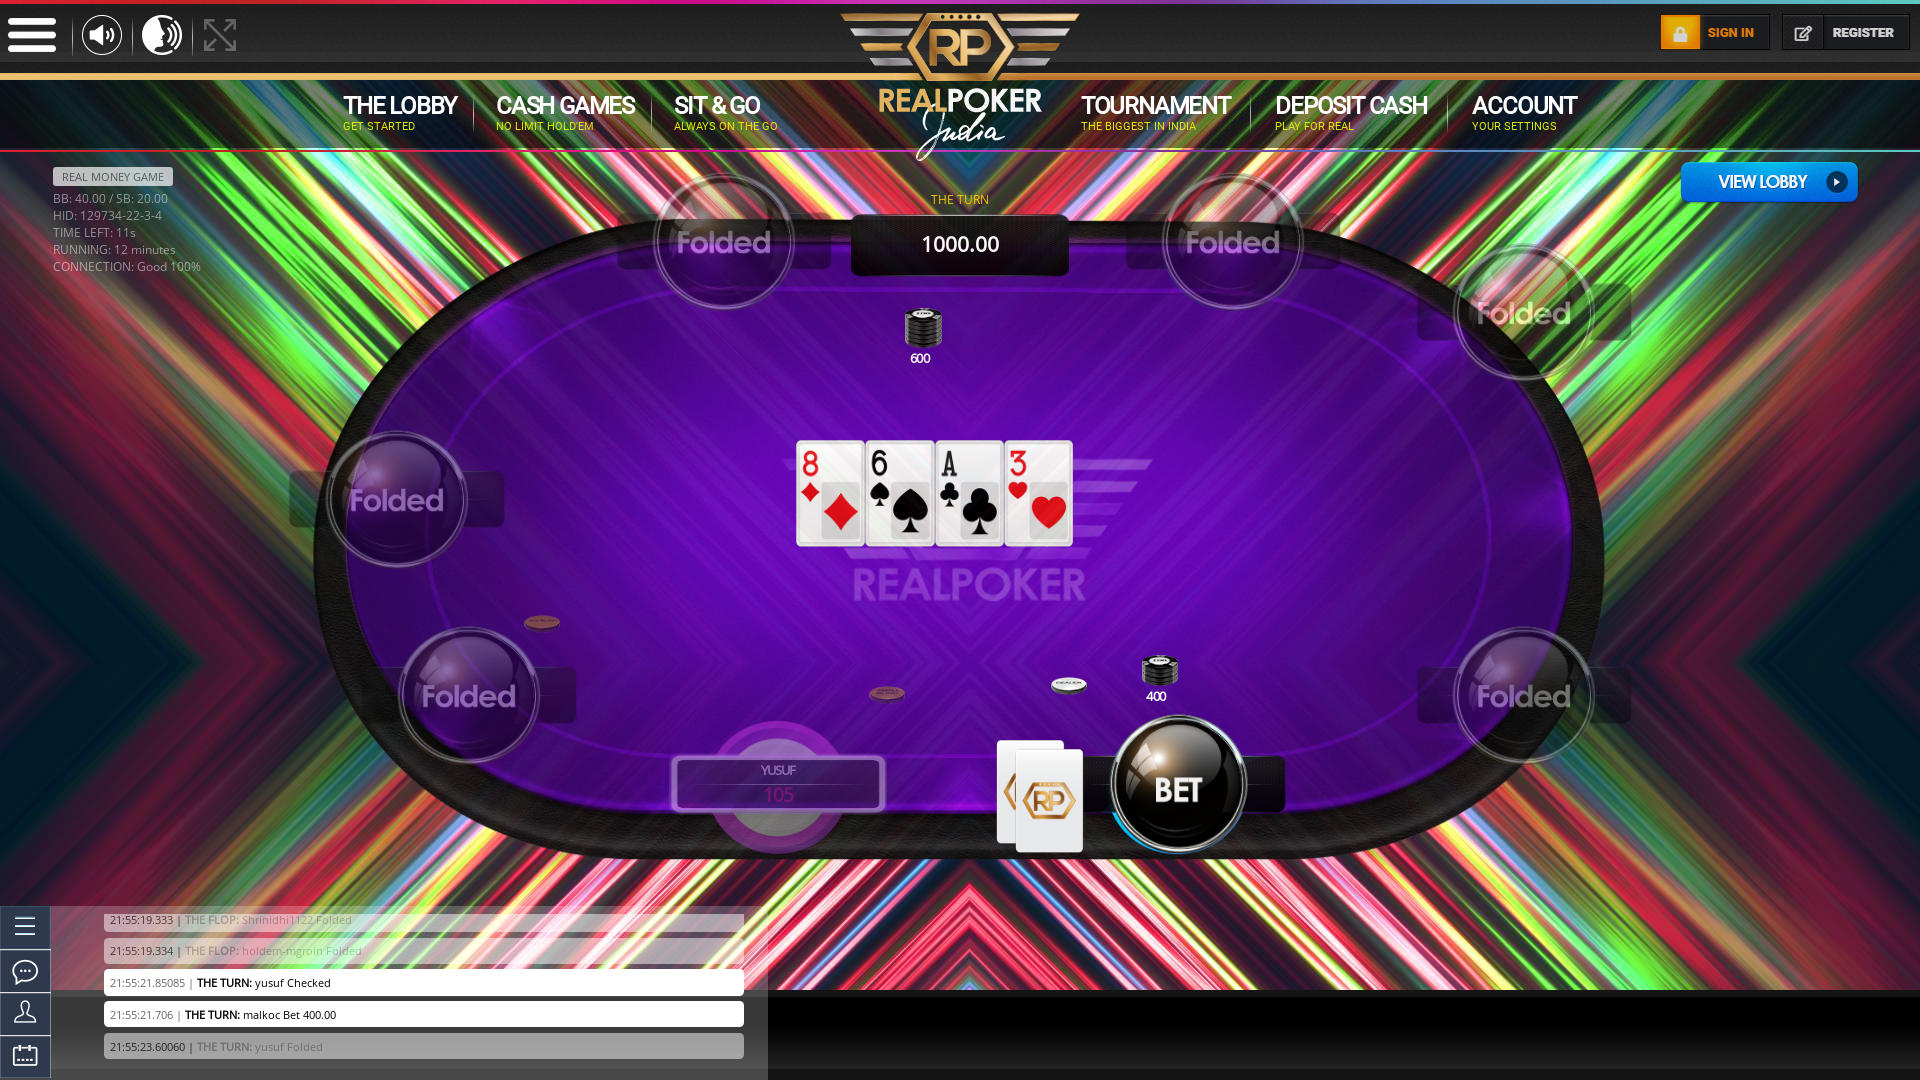 Ghaziabad Real Poker from July